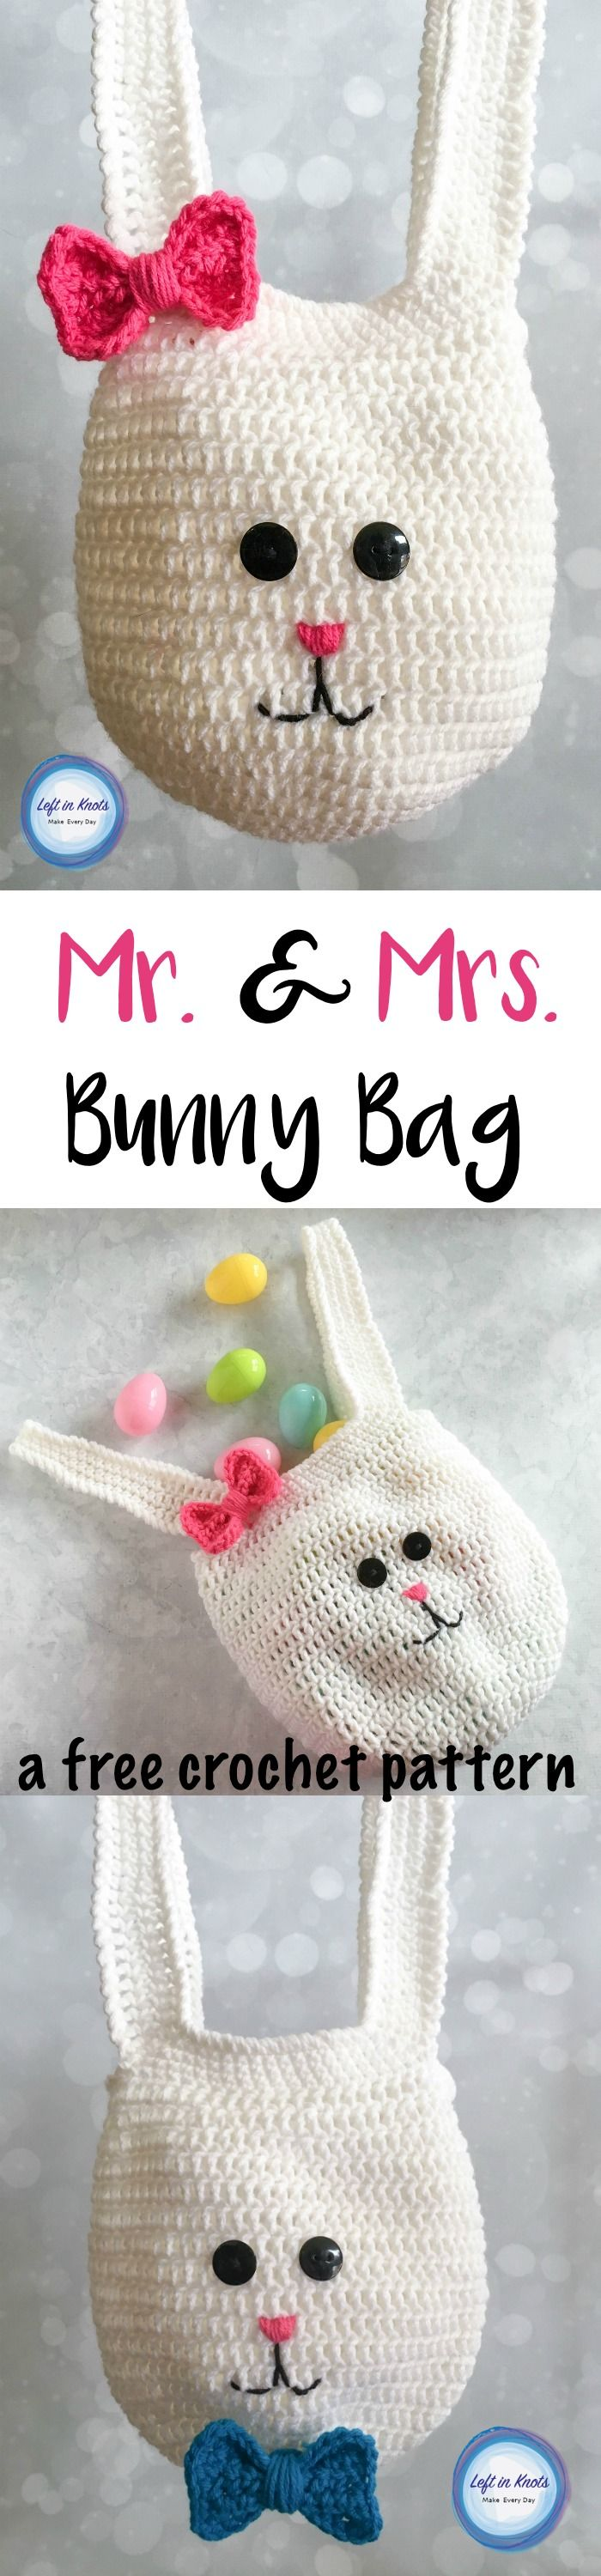 Use this free crochet pattern to make these bunny bags for all of your egg hunters this Easter!